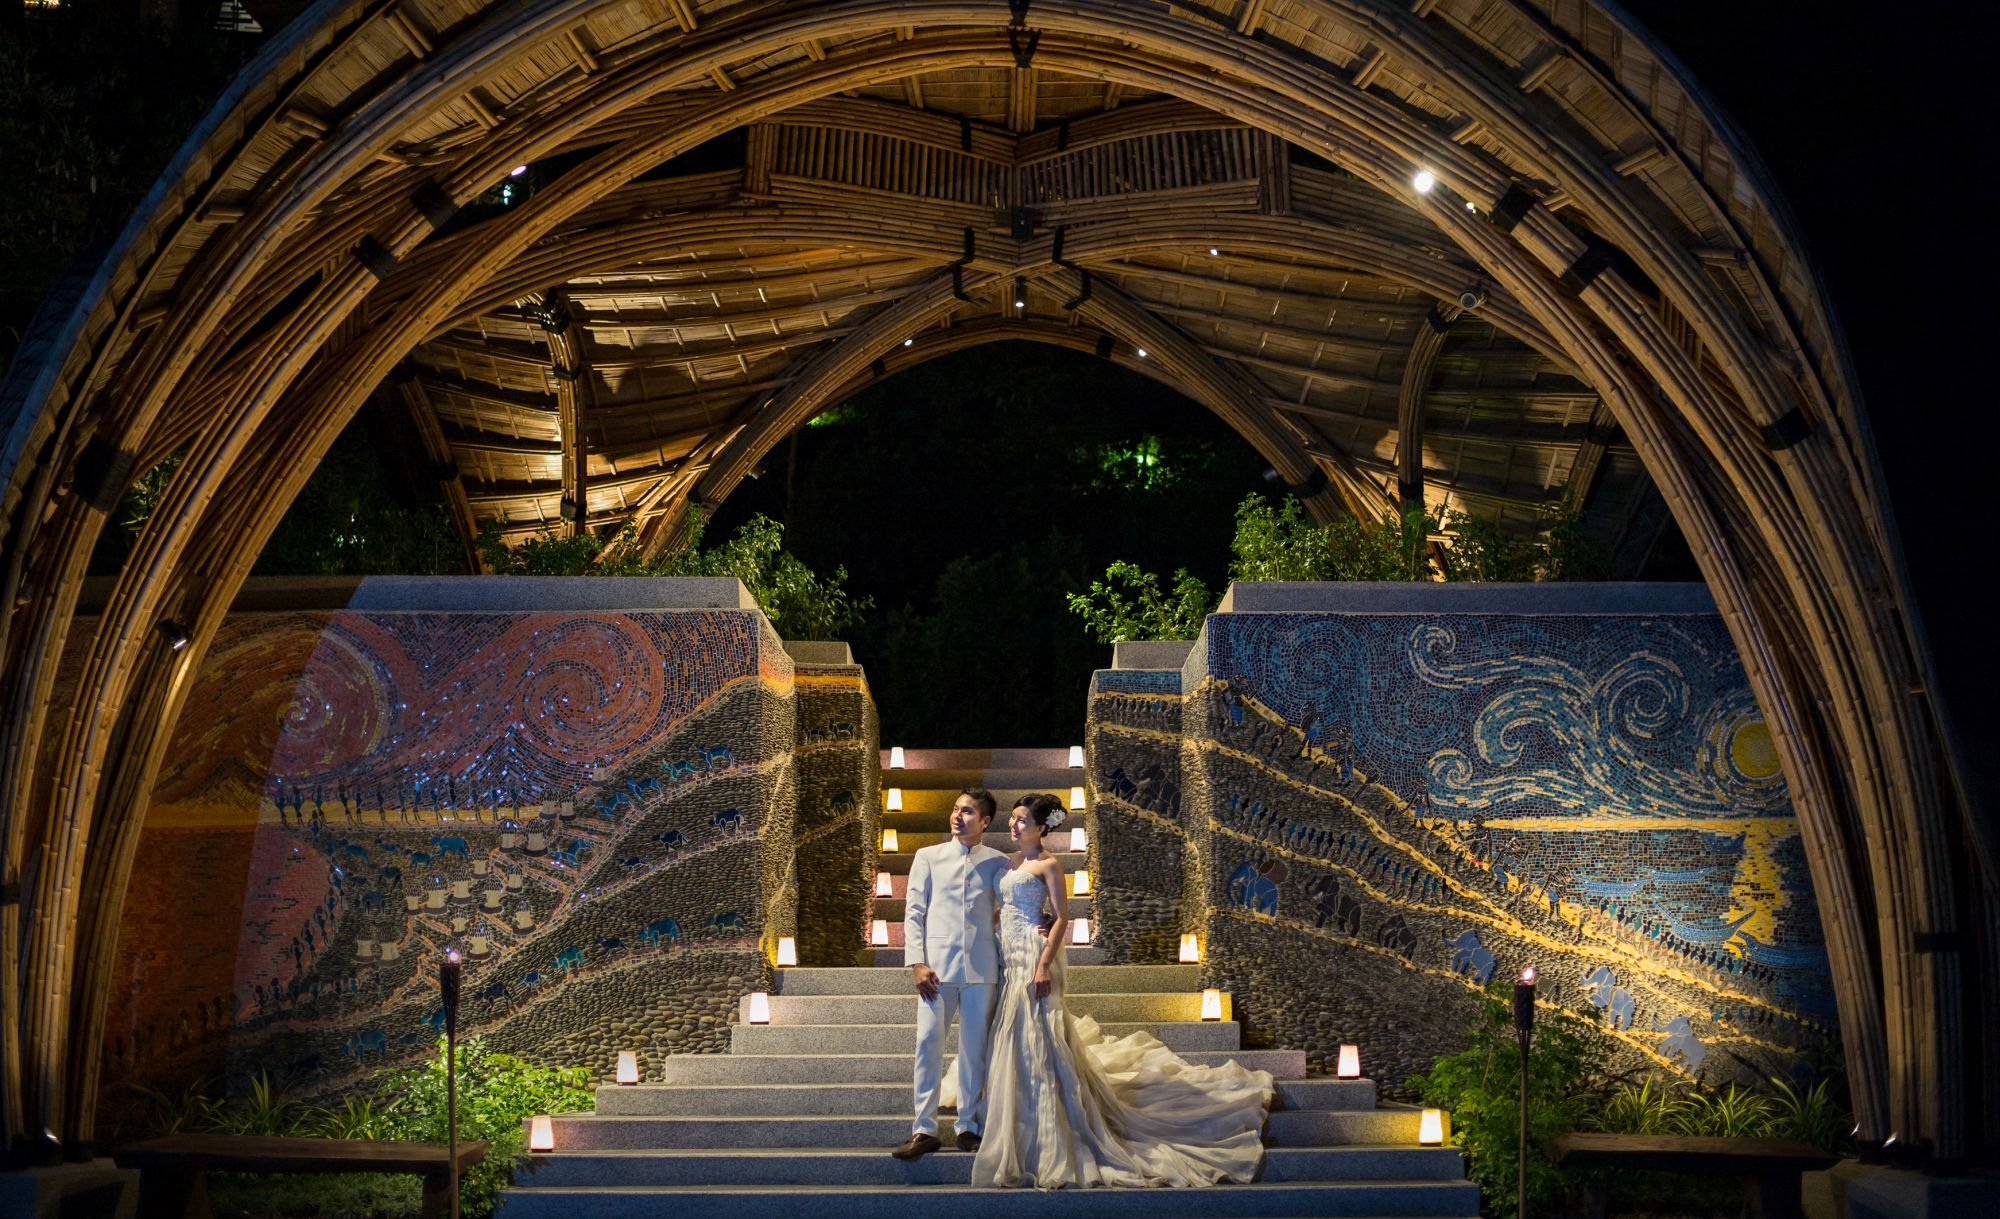 The Best Venues For An Unforgettable Destination Wedding In Southeast Asia